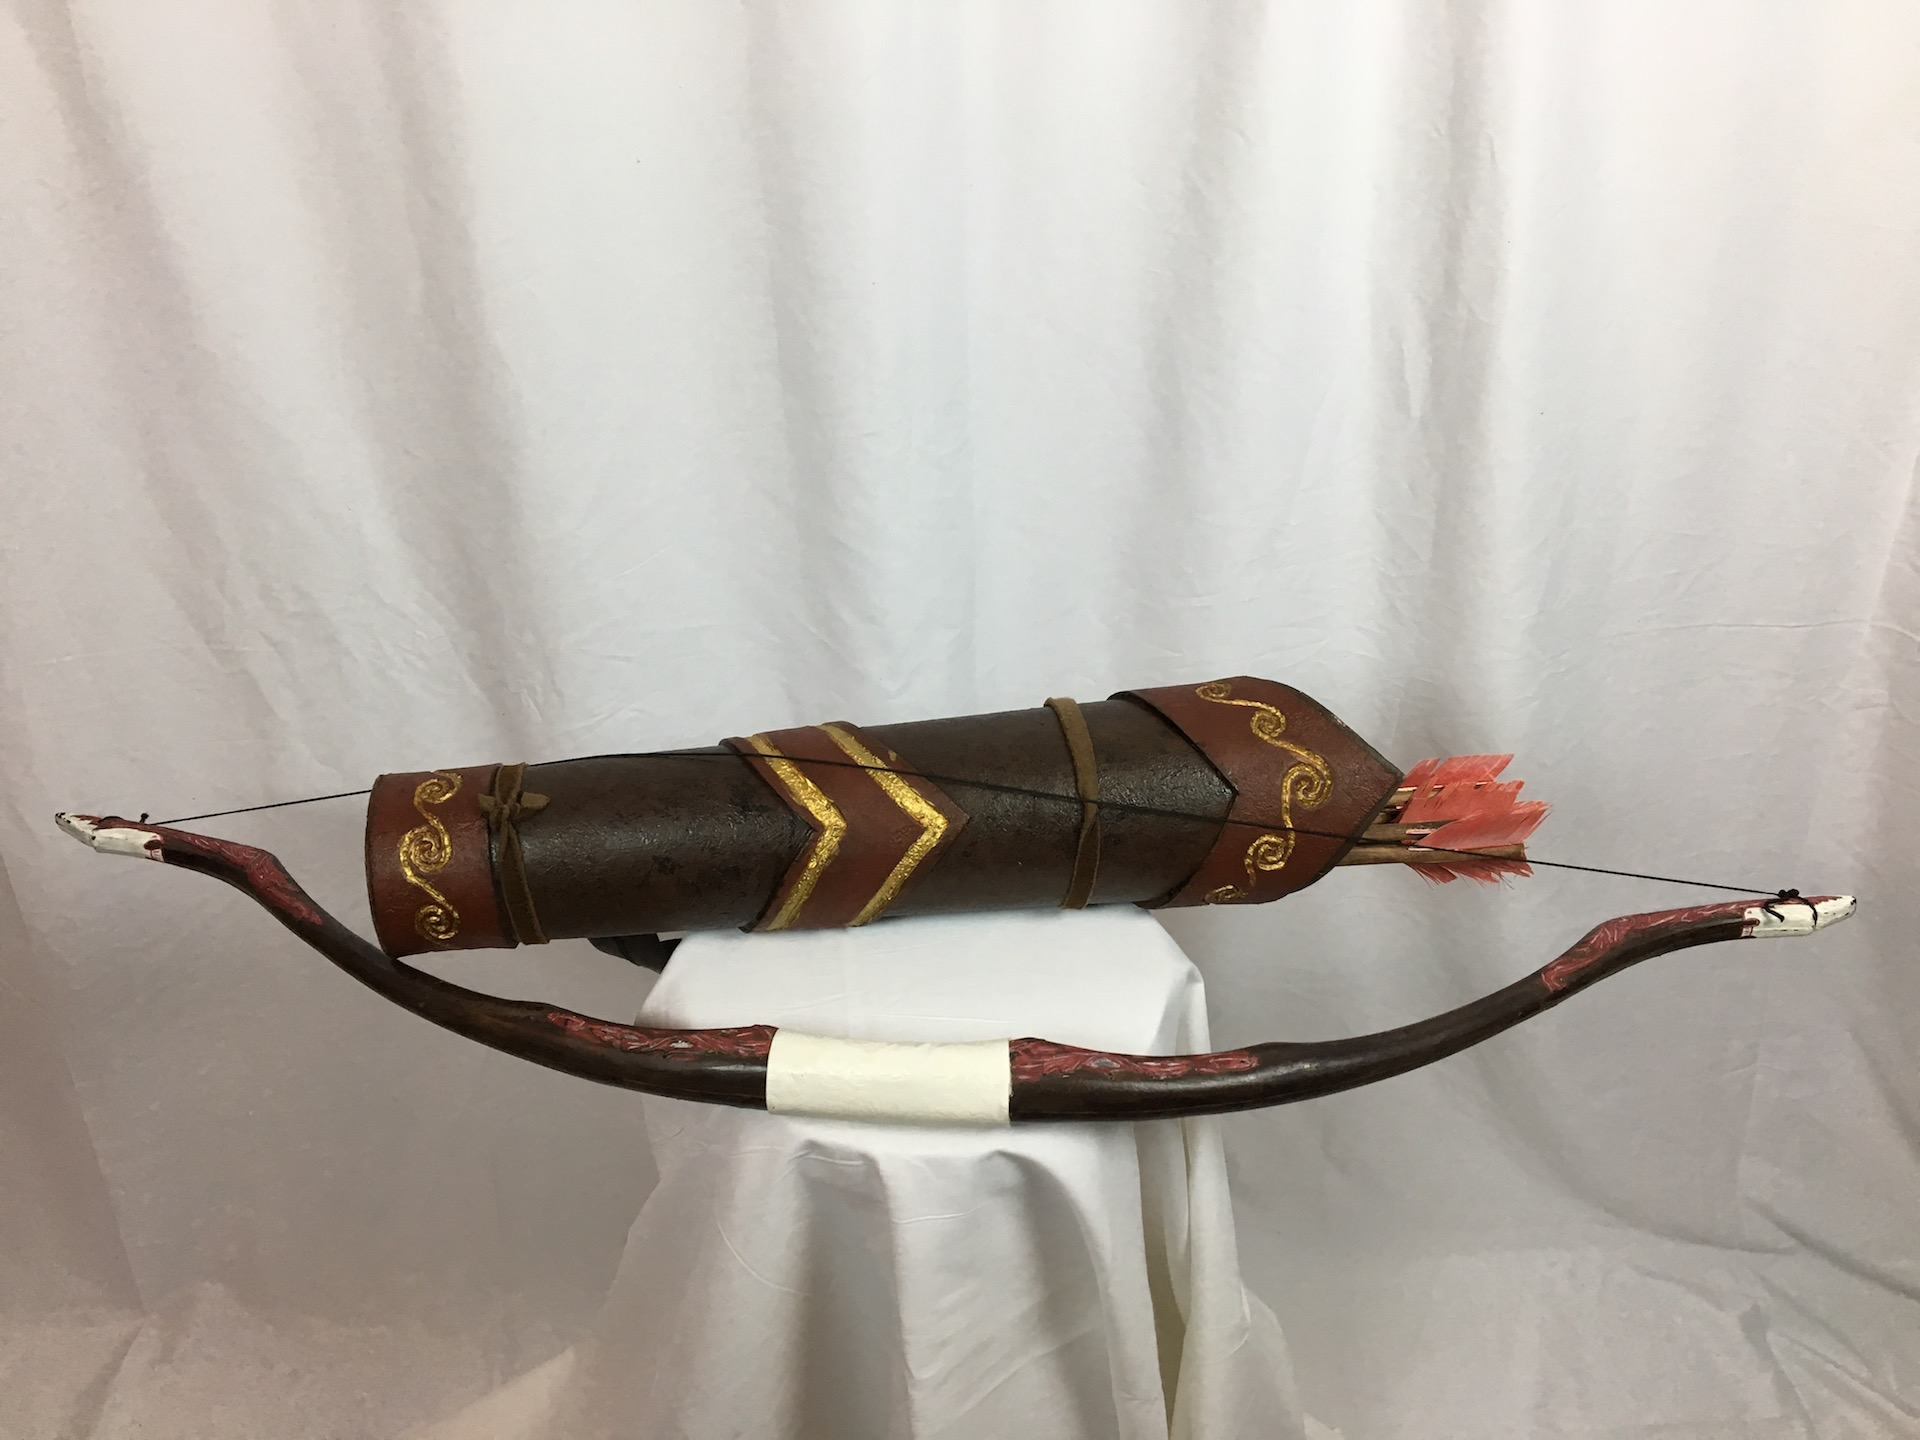 Susan's Bow and Quiver vs2